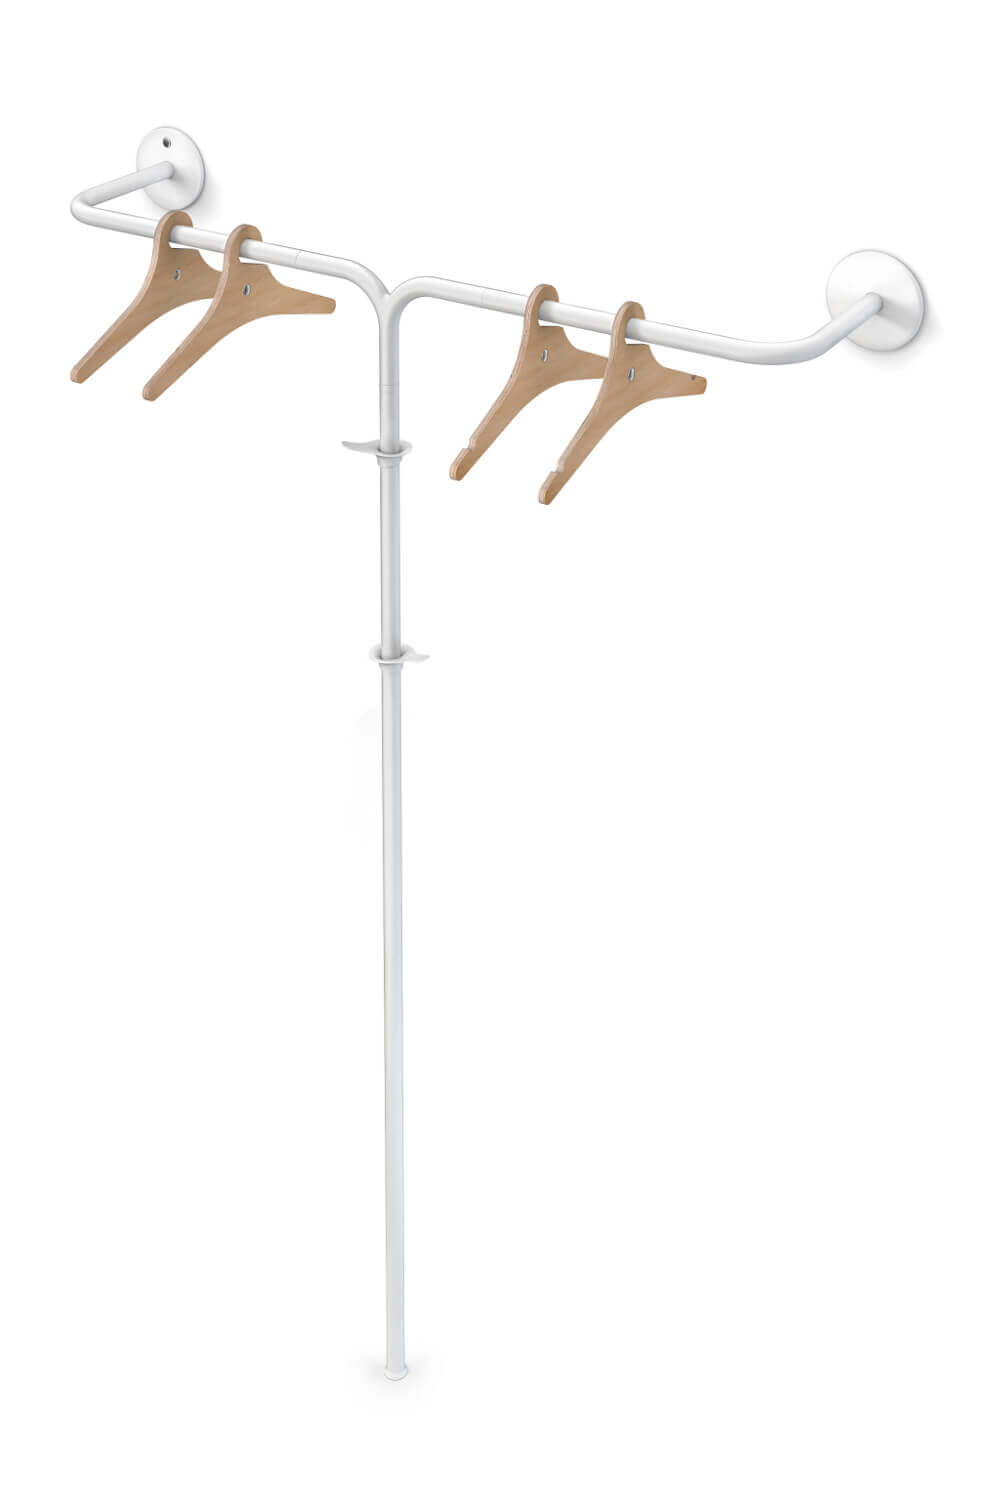 Fixed coat rack hybrid vine 4 white Teun Fleskens